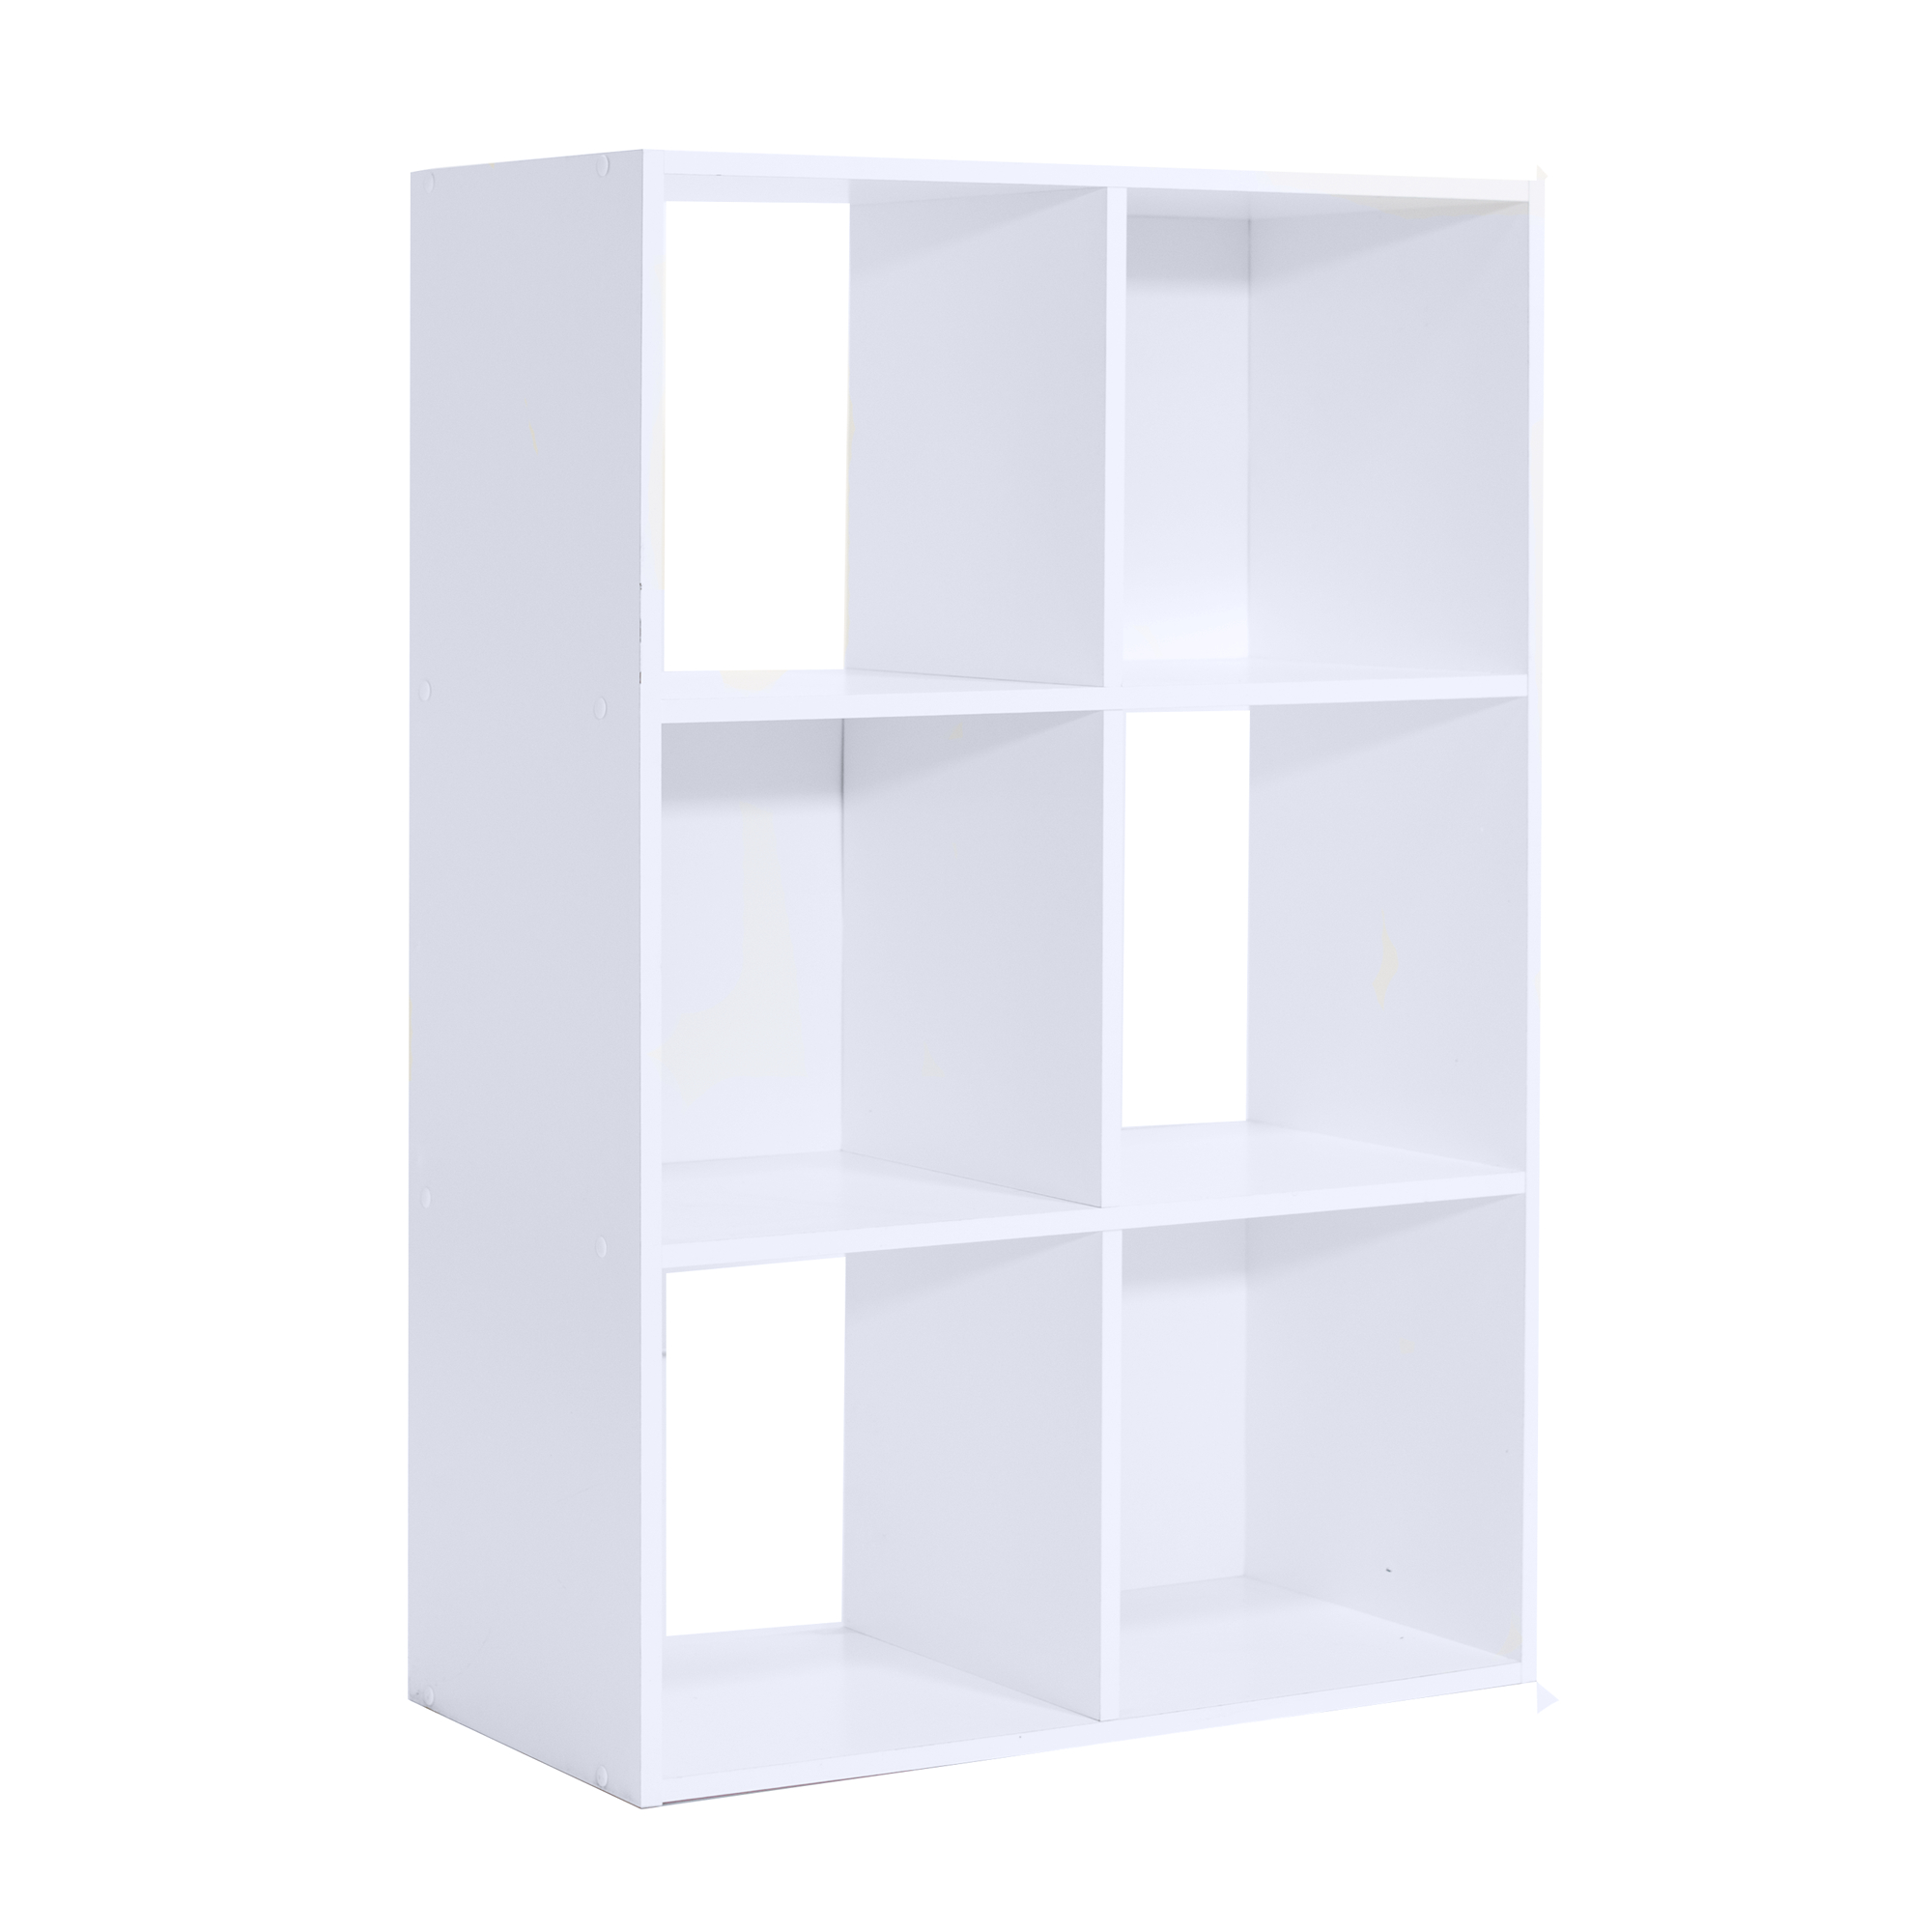 2020 Mainstays 6 Cube Storage Organizer, Multiple Colors Within Cubicals Cube Bookcases (View 9 of 20)